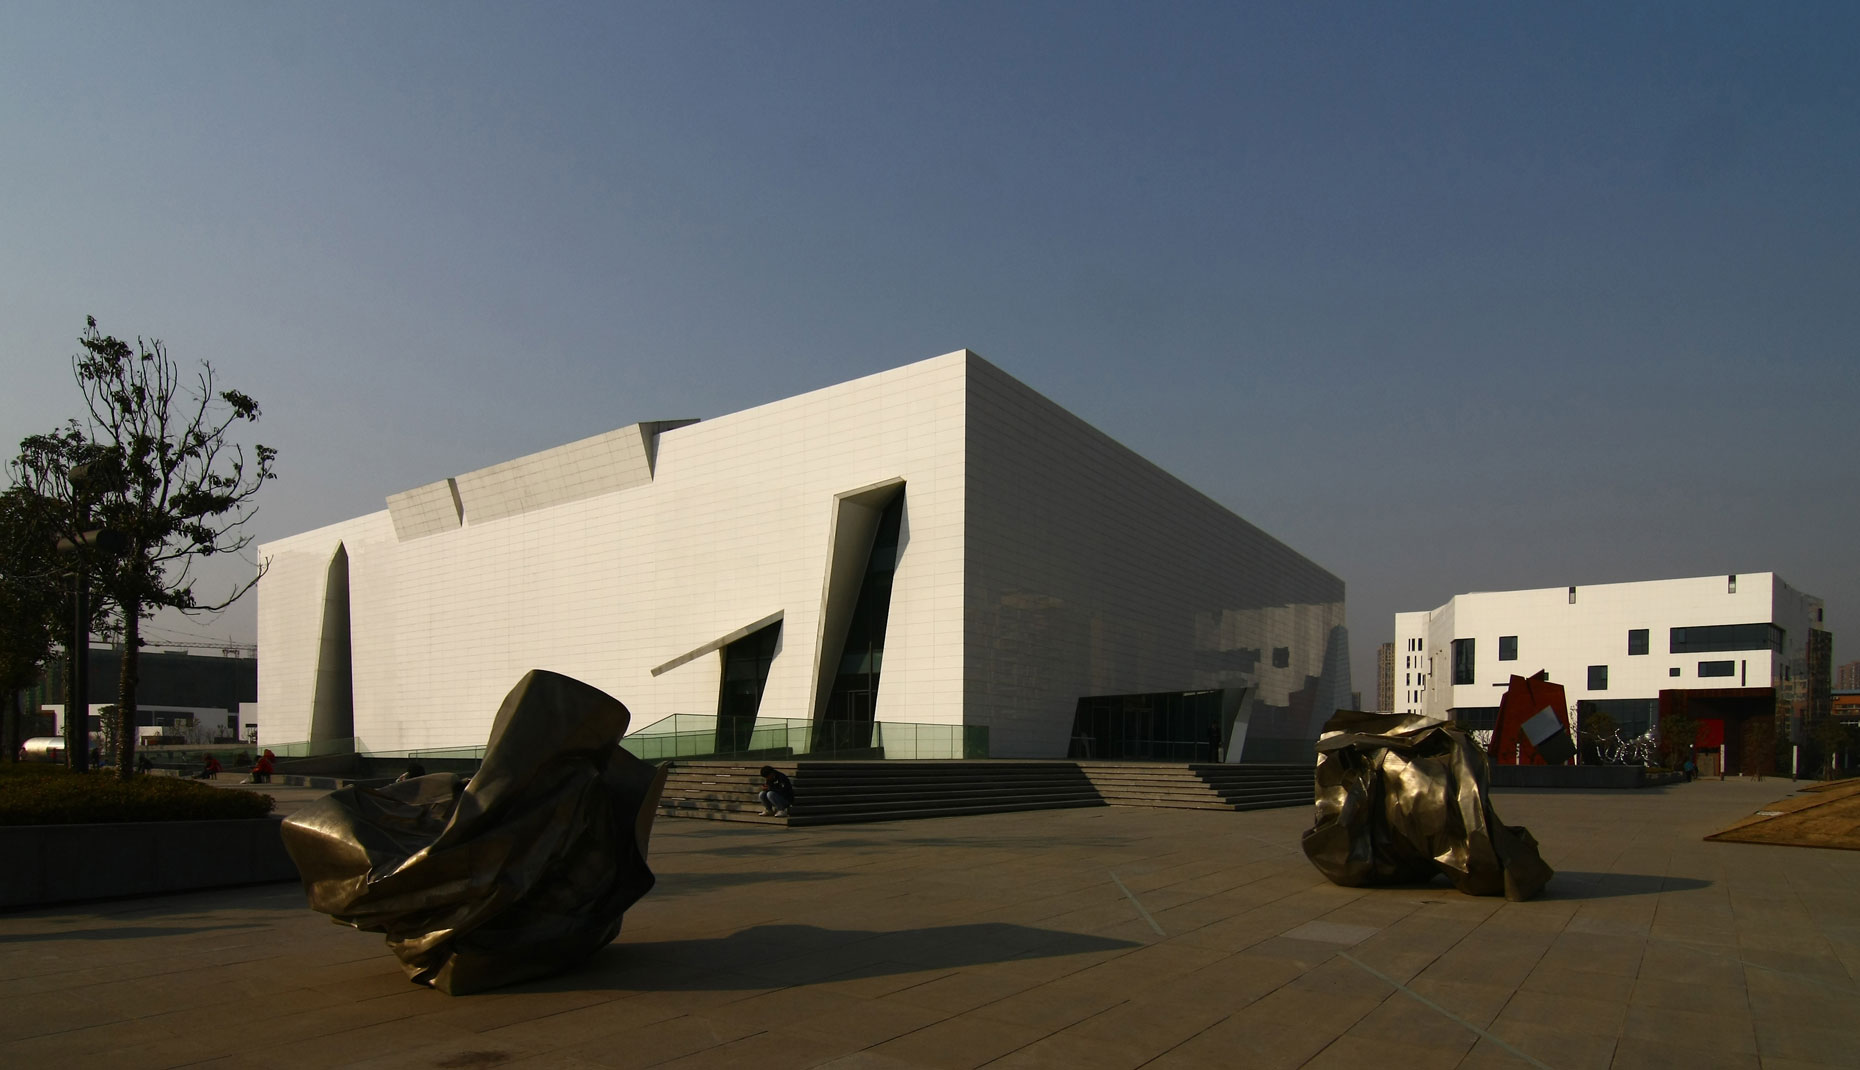 david-hu-architect-commercial-hospitality_wuhan-museum_31a.jpg